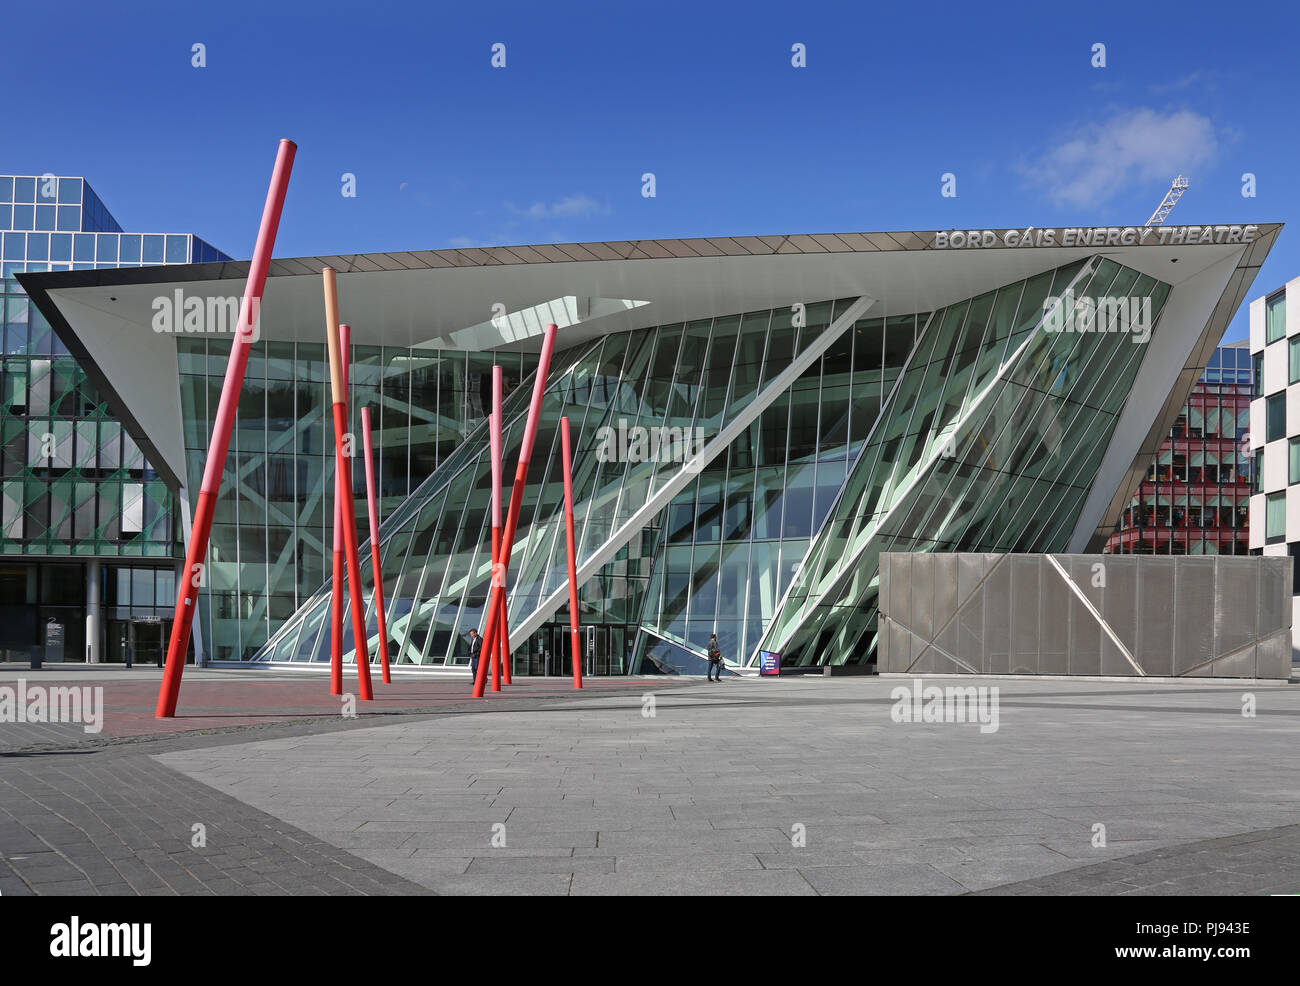 Front elevation of the Bord Gais Energy Theatre, Dublin, designed by architect Daniel Libeskind. - Stock Image